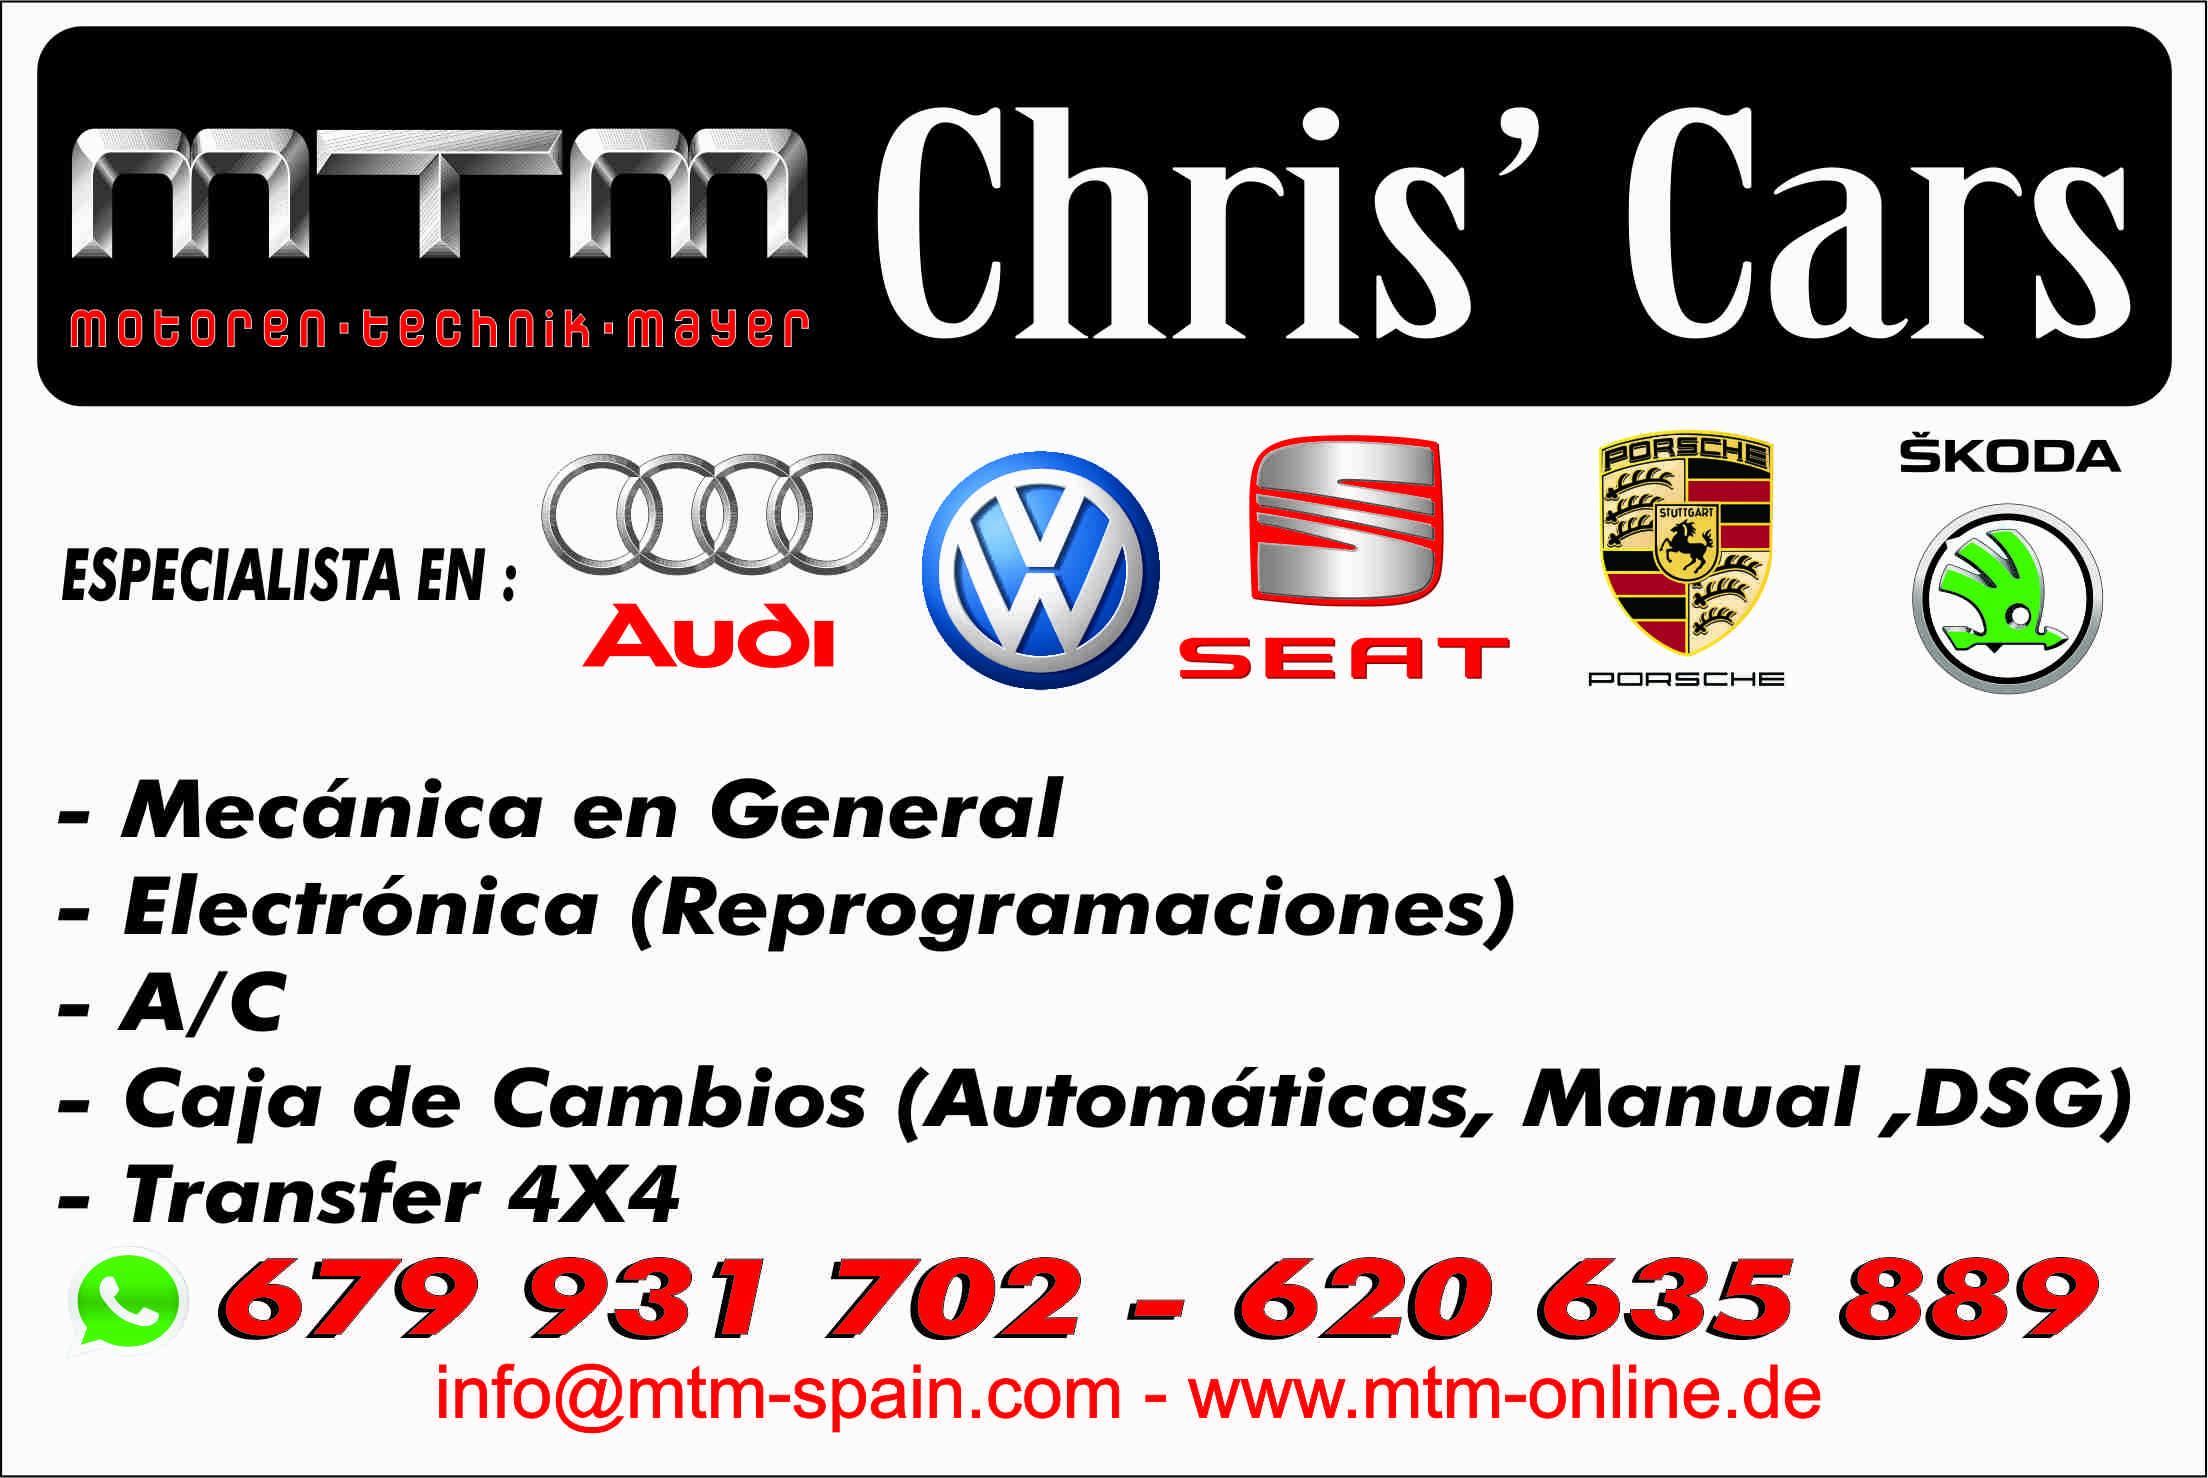 Car Mechanic, Automatic Gearbox Repair Reconditioning Vélez Málaga, Torre del Mar